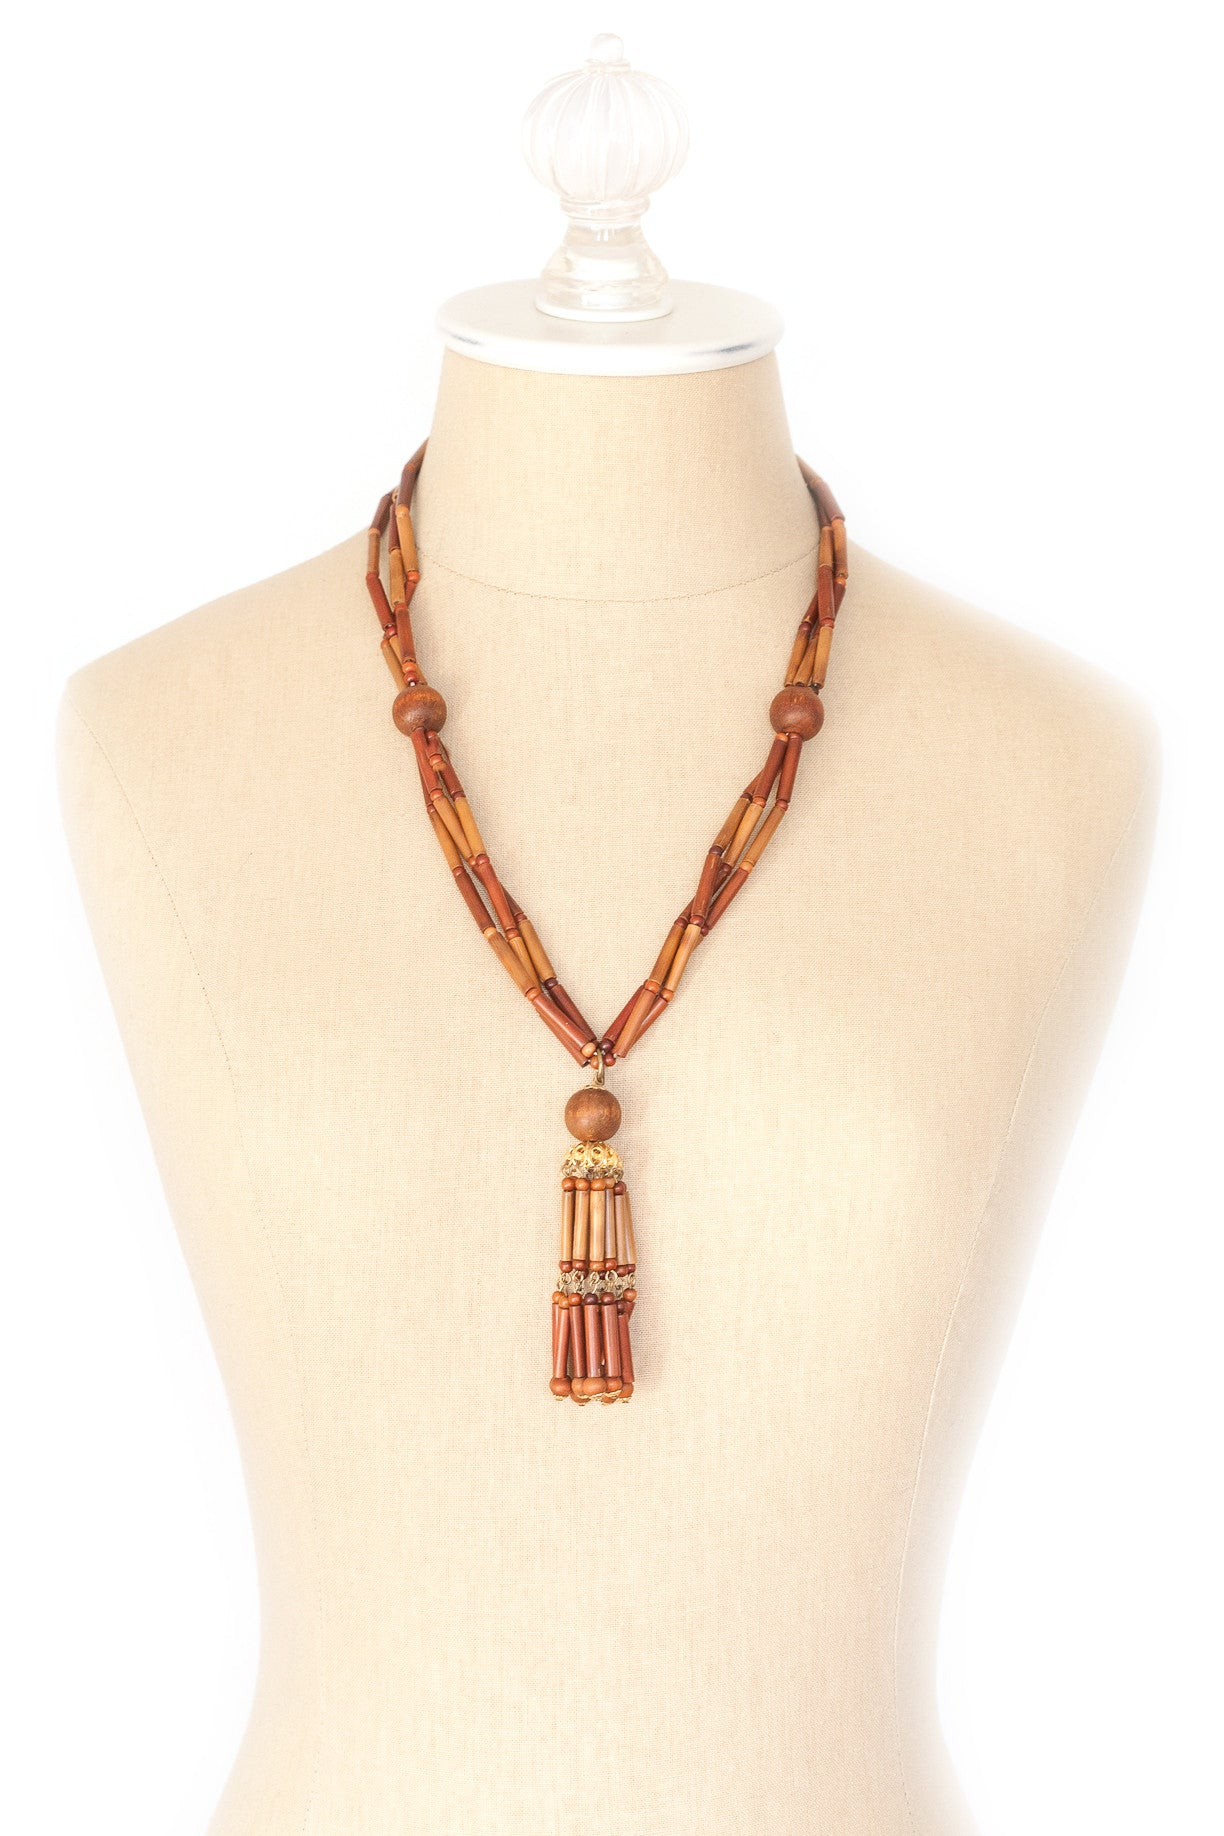 50's__Vintage__Wooden Tassel Necklace